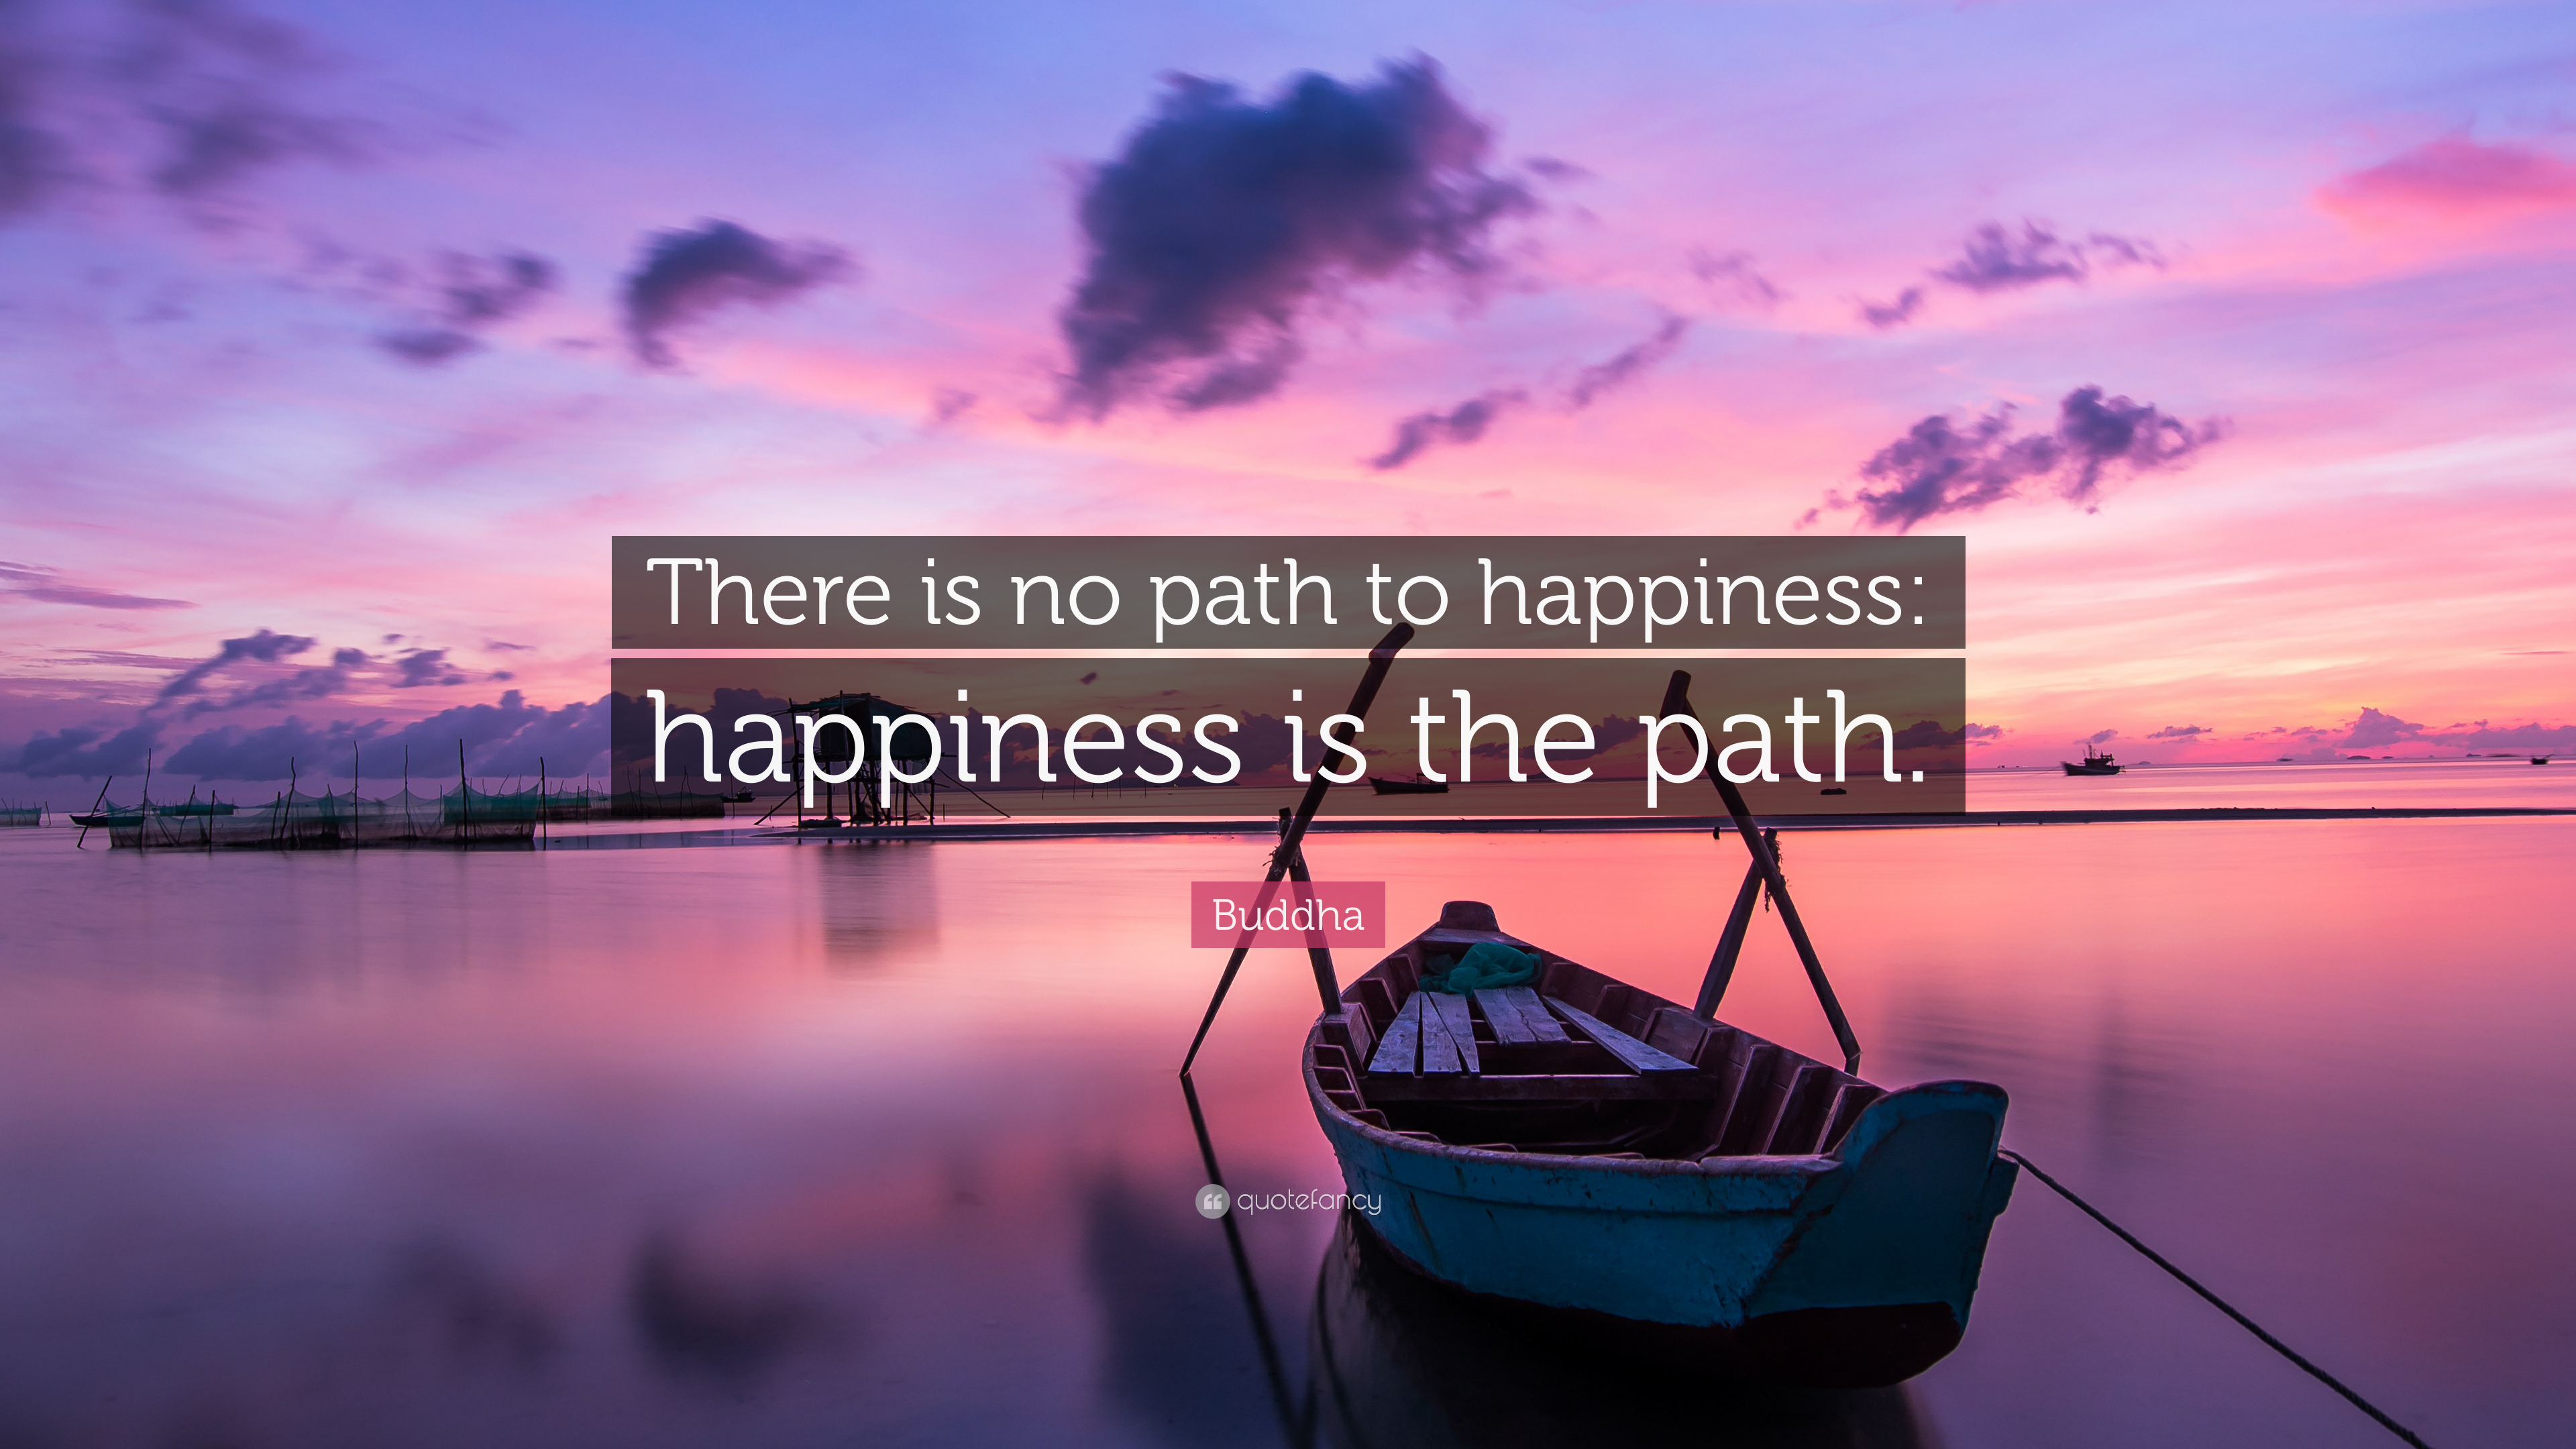 buddha quote   u201cthere is no path to happiness  happiness is the path  u201d  32 wallpapers